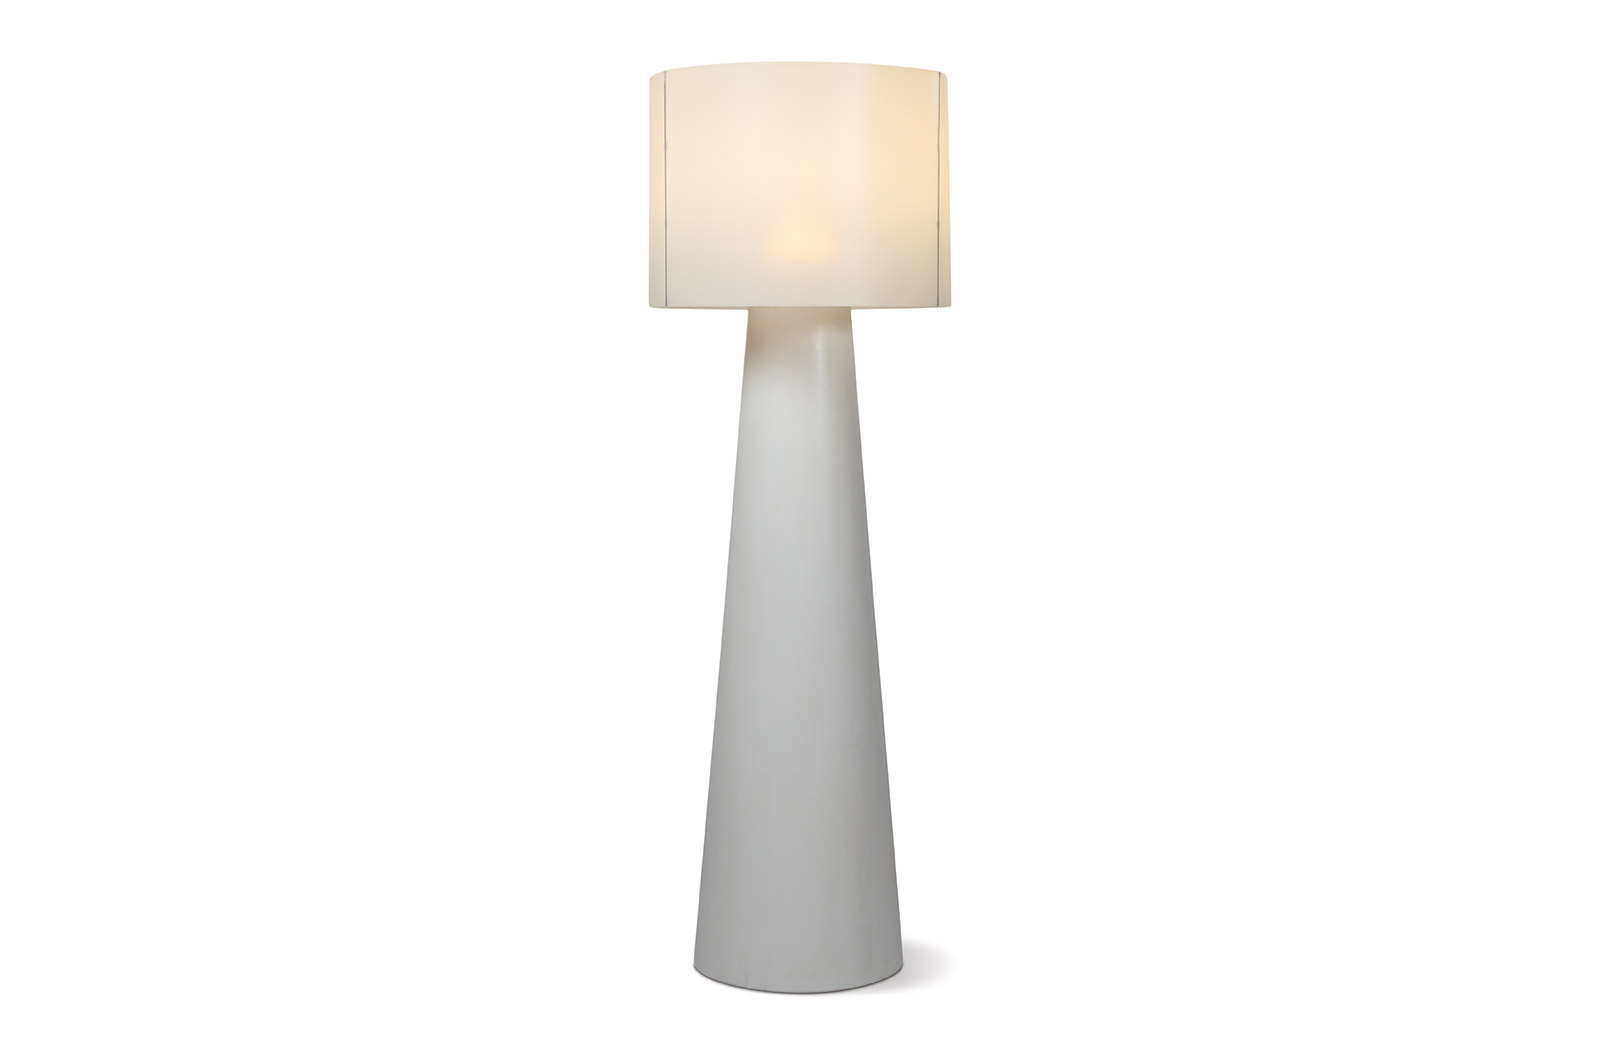 Picture of: Inda Cordless Outdoor Led Floor Lamp Seasonal Living